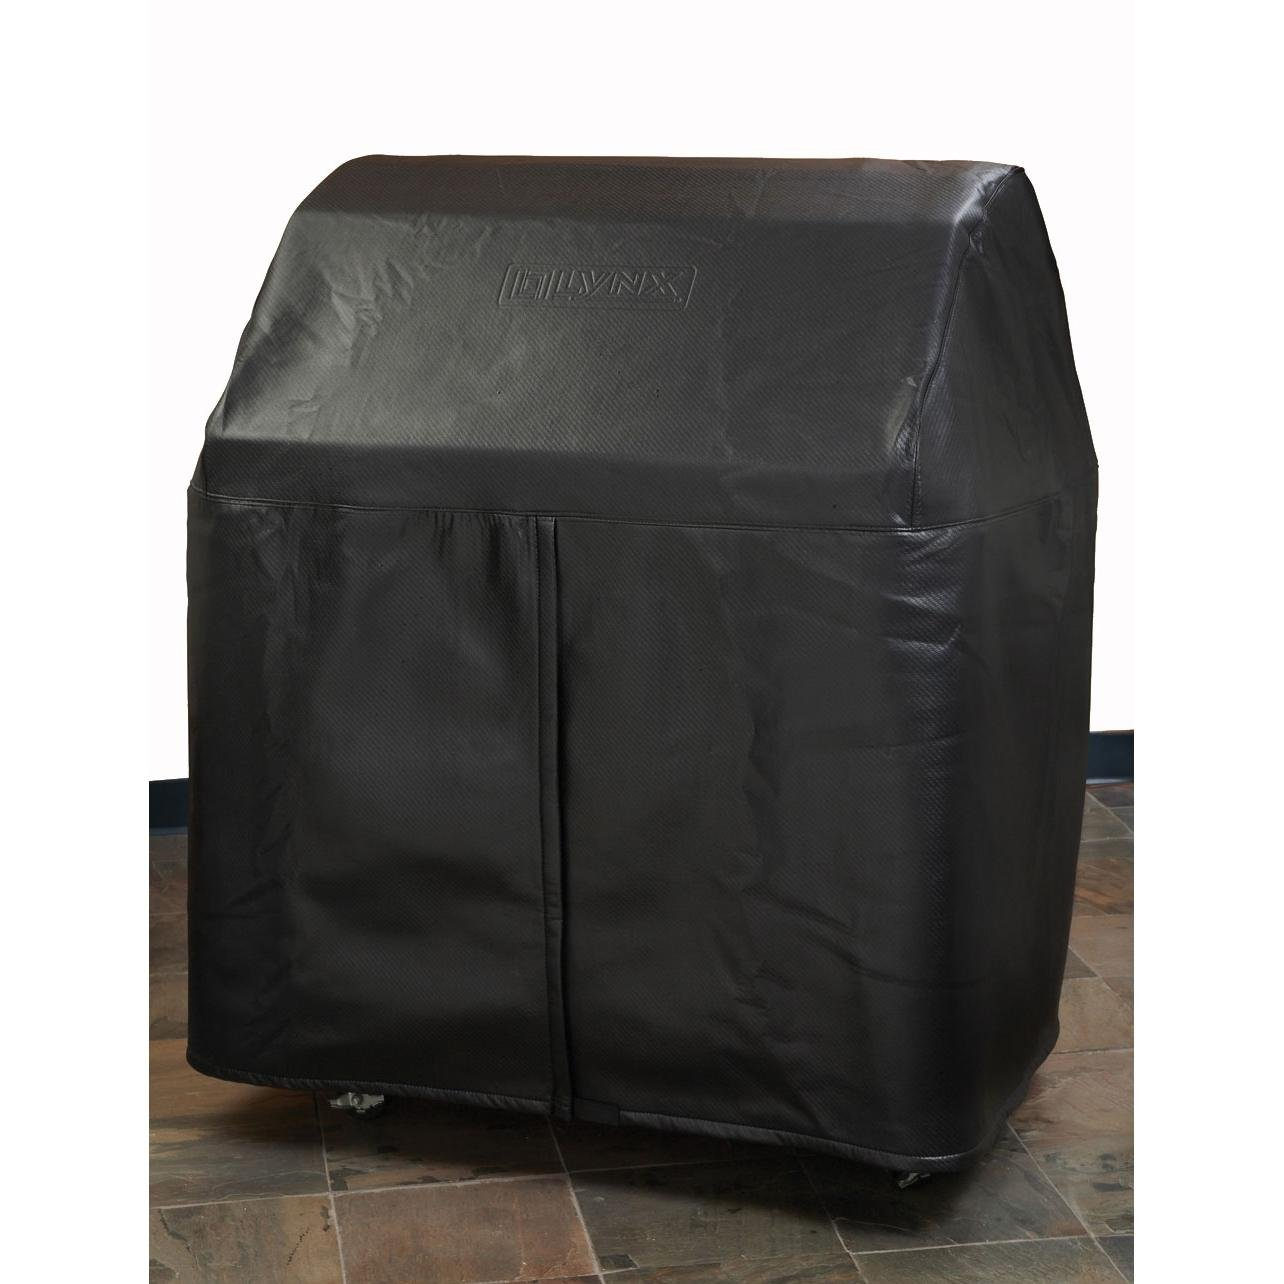 Lynx CC42F Custom Grill Cover for 42-Inch Gas Grill-On Cart